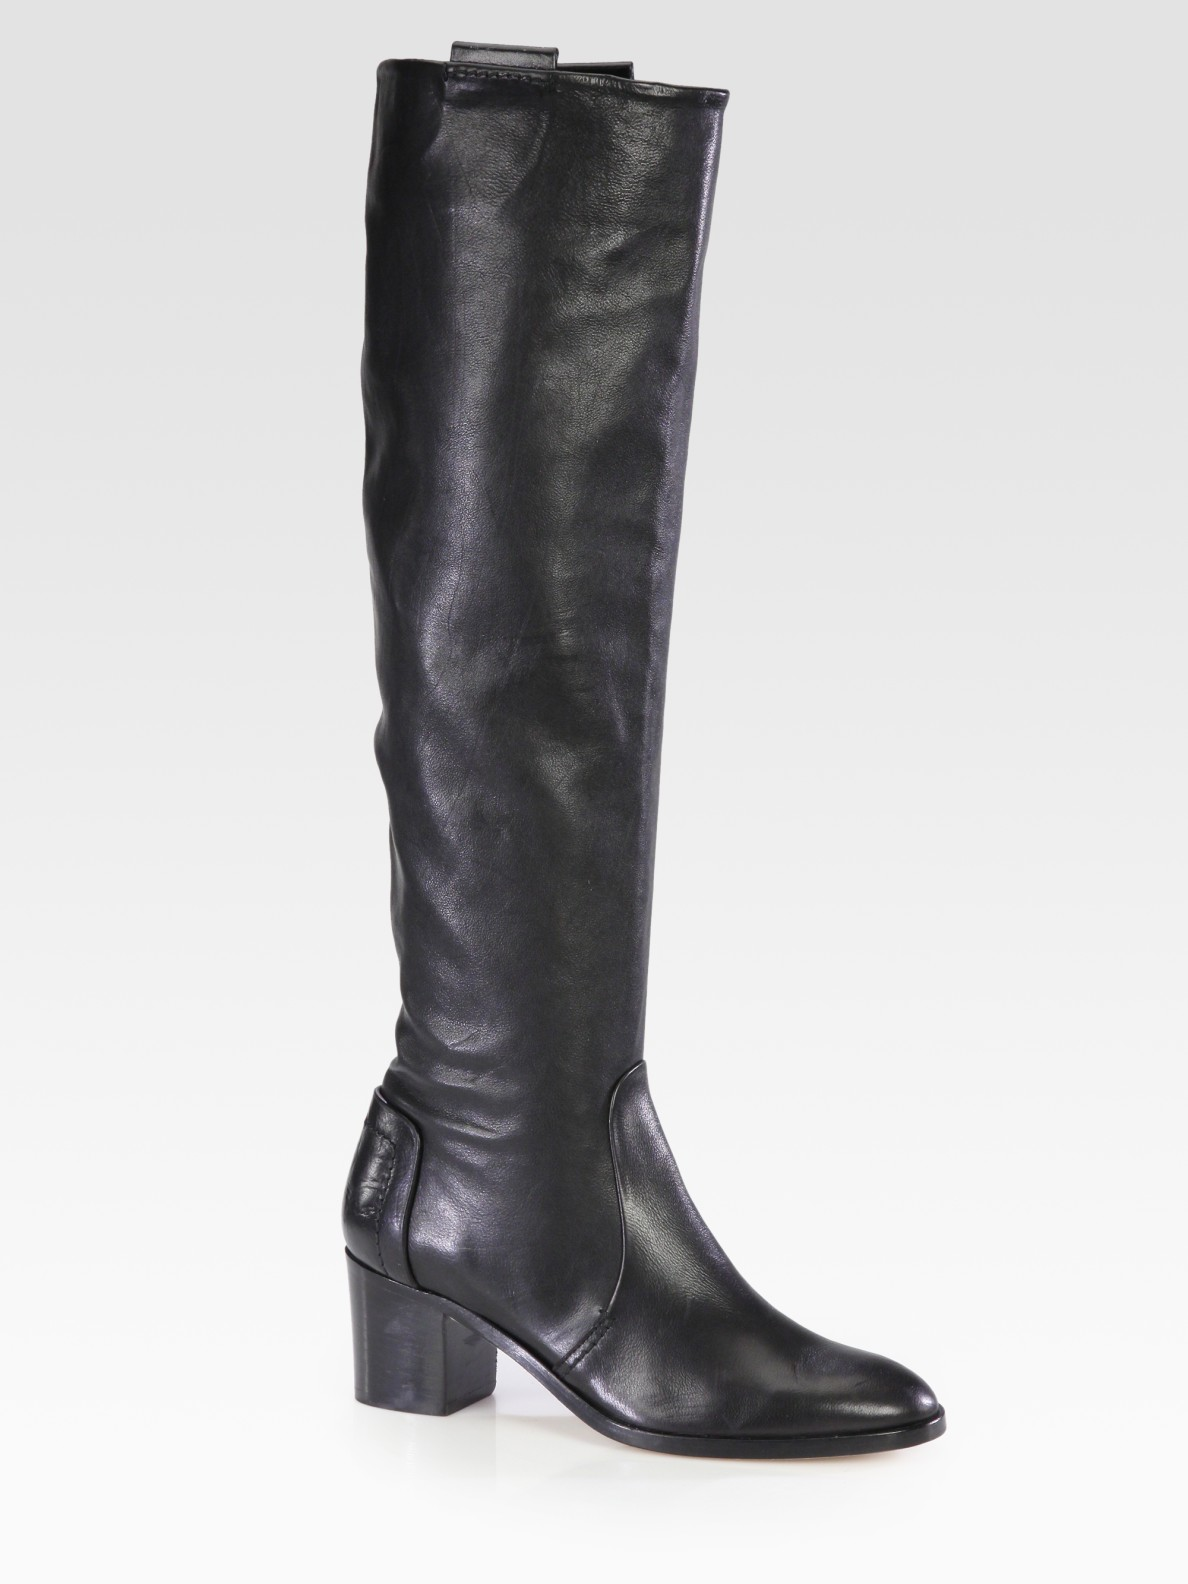 recommend sale online free shipping sast Reed Krakoff Leather Knee-High Boots eastbay cheap online eastbay cheap price Gtf4f5